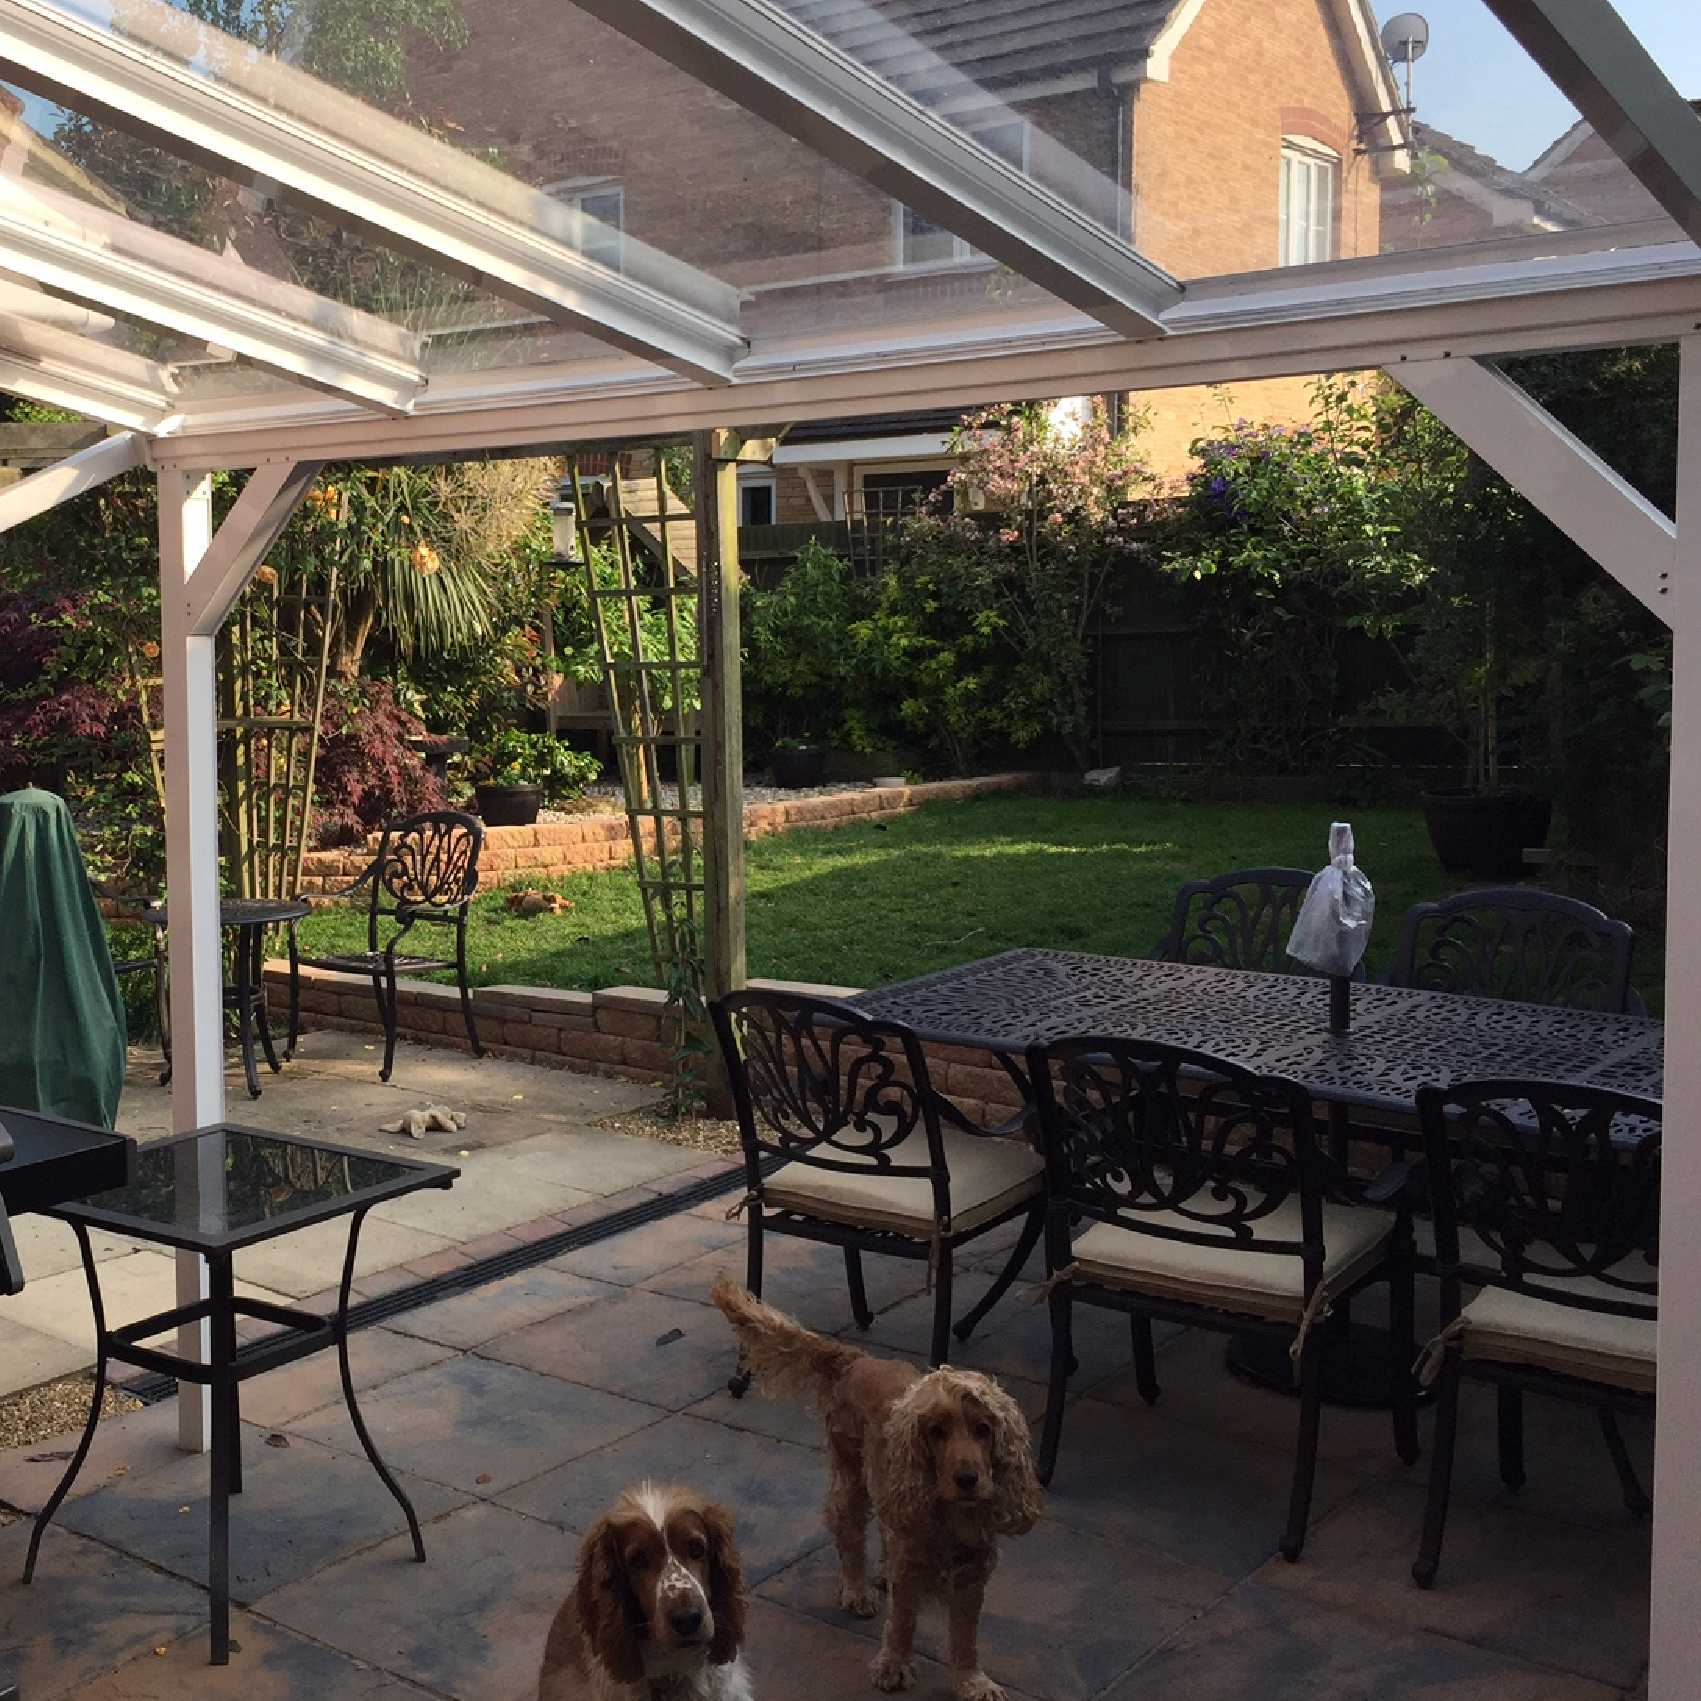 Affordable Omega Smart White Lean-To Canopy with 6mm Glass Clear Plate Polycarbonate Glazing - 6.3m (W) x 2.0m (P), (4) Supporting Posts